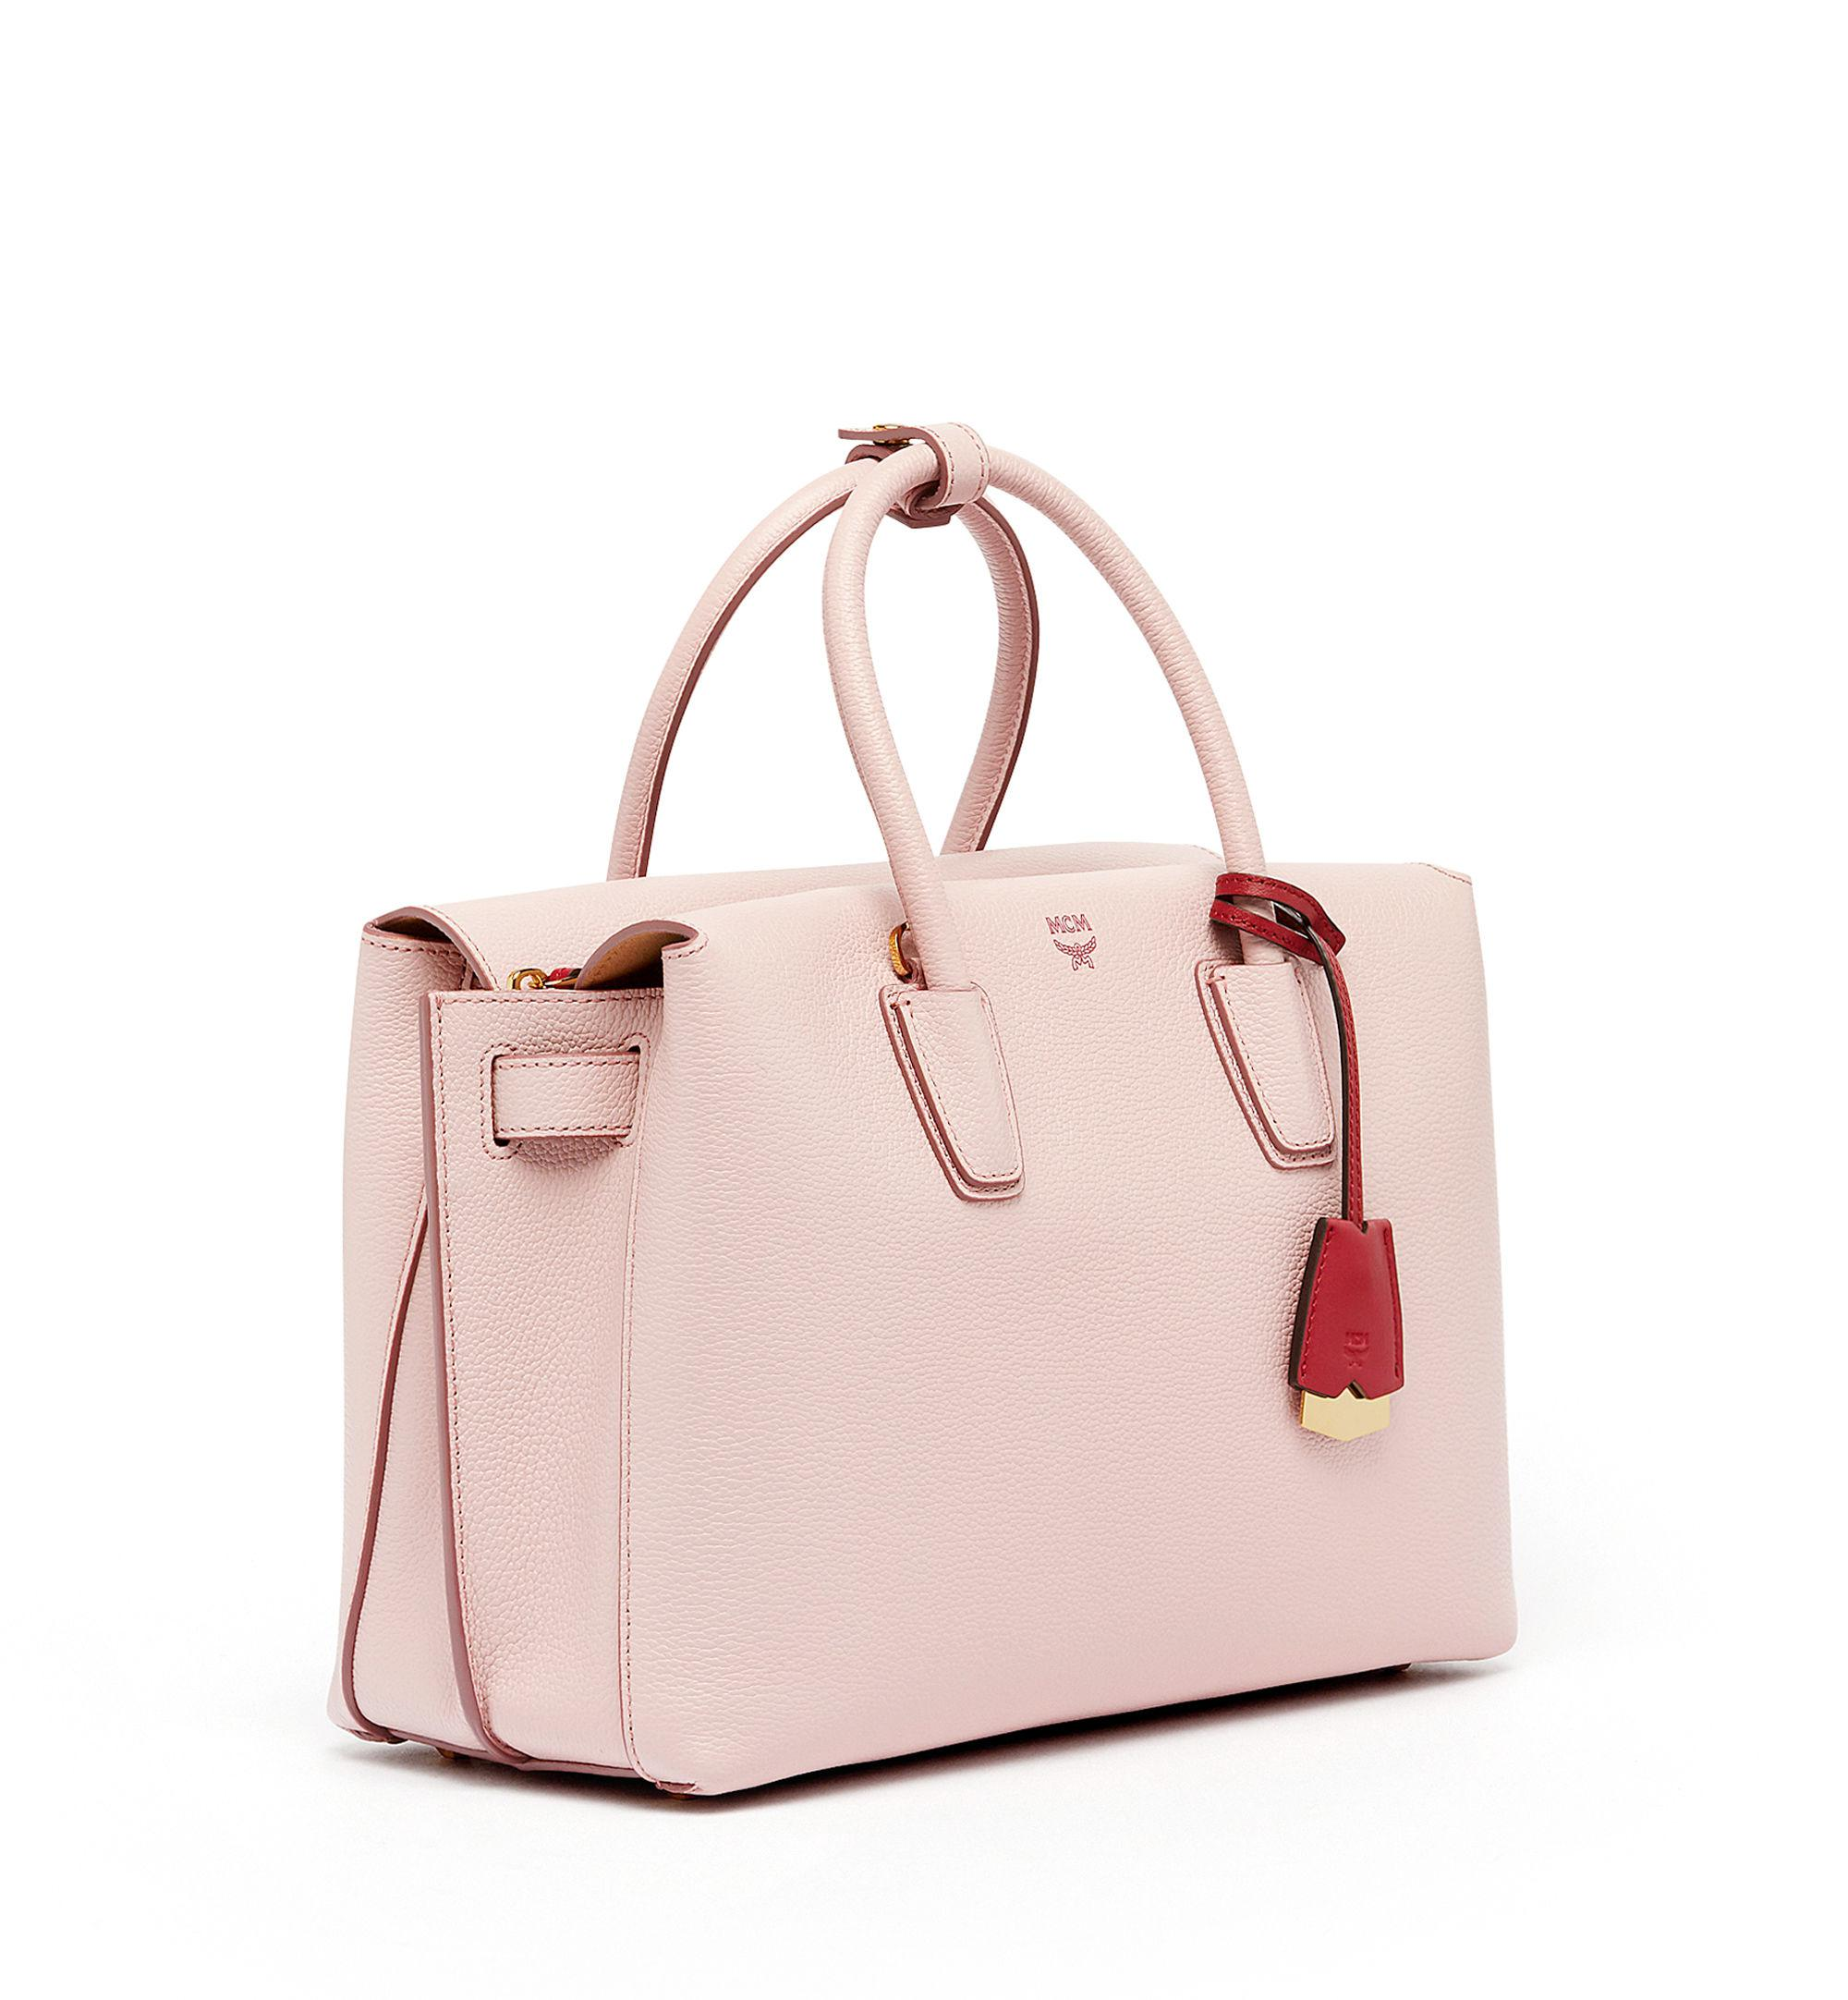 MCM Leather Milla Tote in Pale Mauve (Pink)